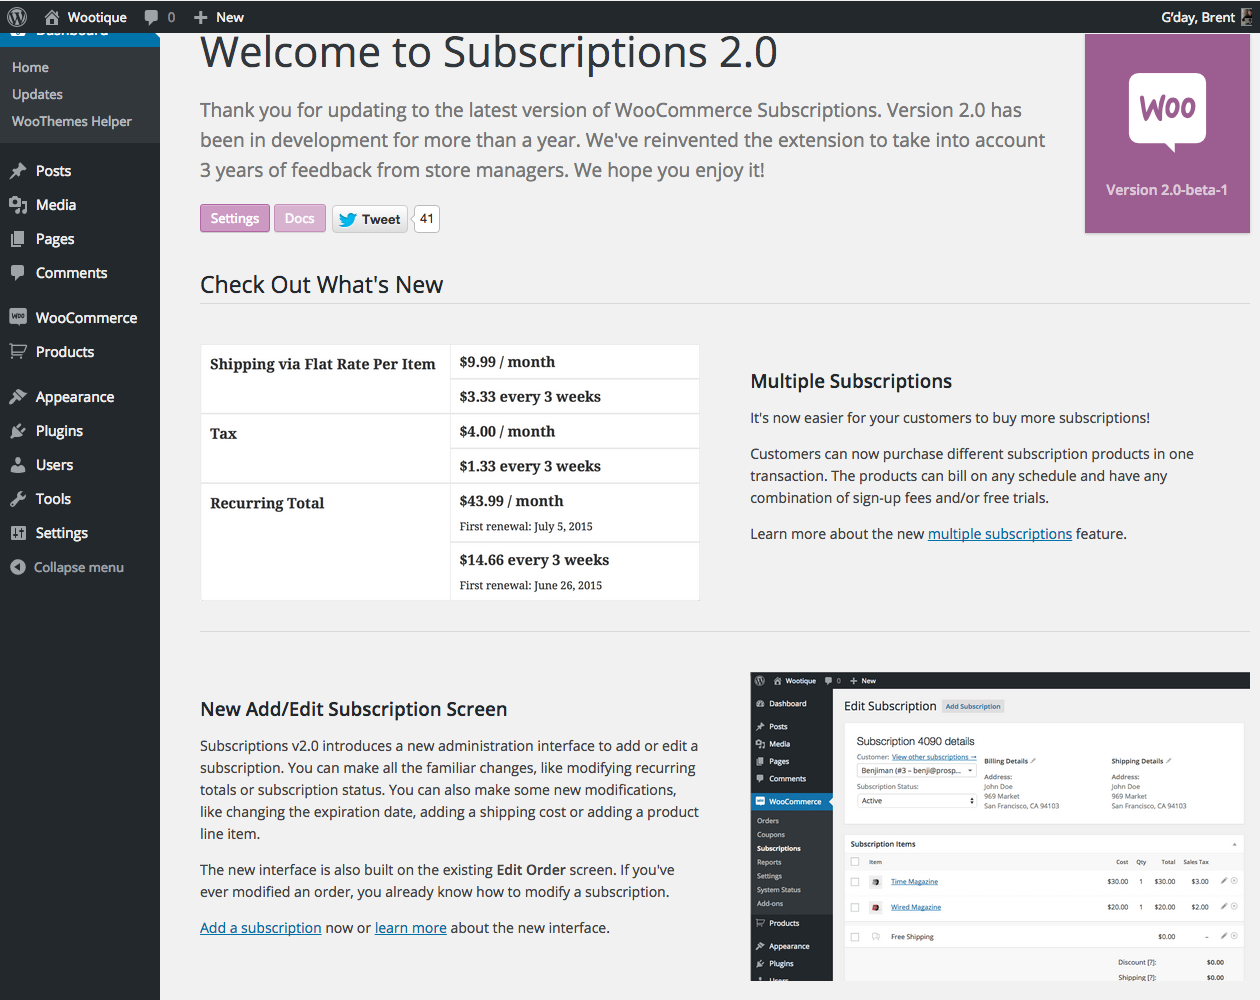 Subscriptions v2.0 Welcome Screen